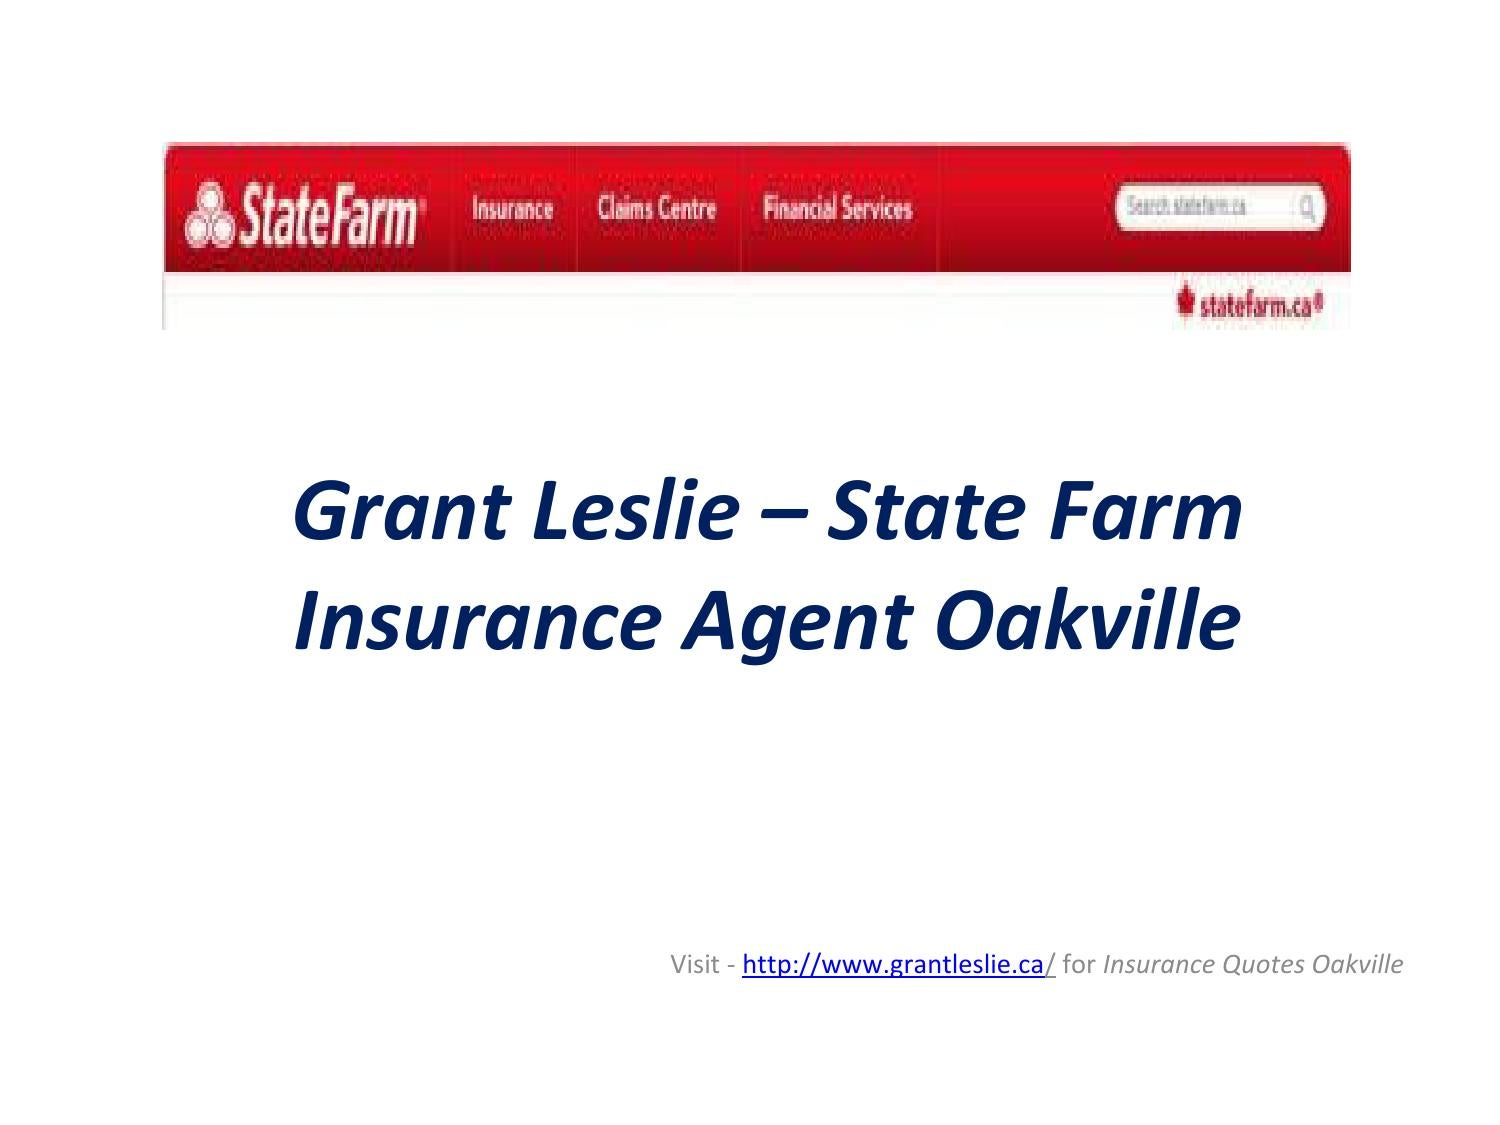 State Farm Insurance Quotes Grant Leslie  State Farm Insurance Agent Oakvillegrant Leslie